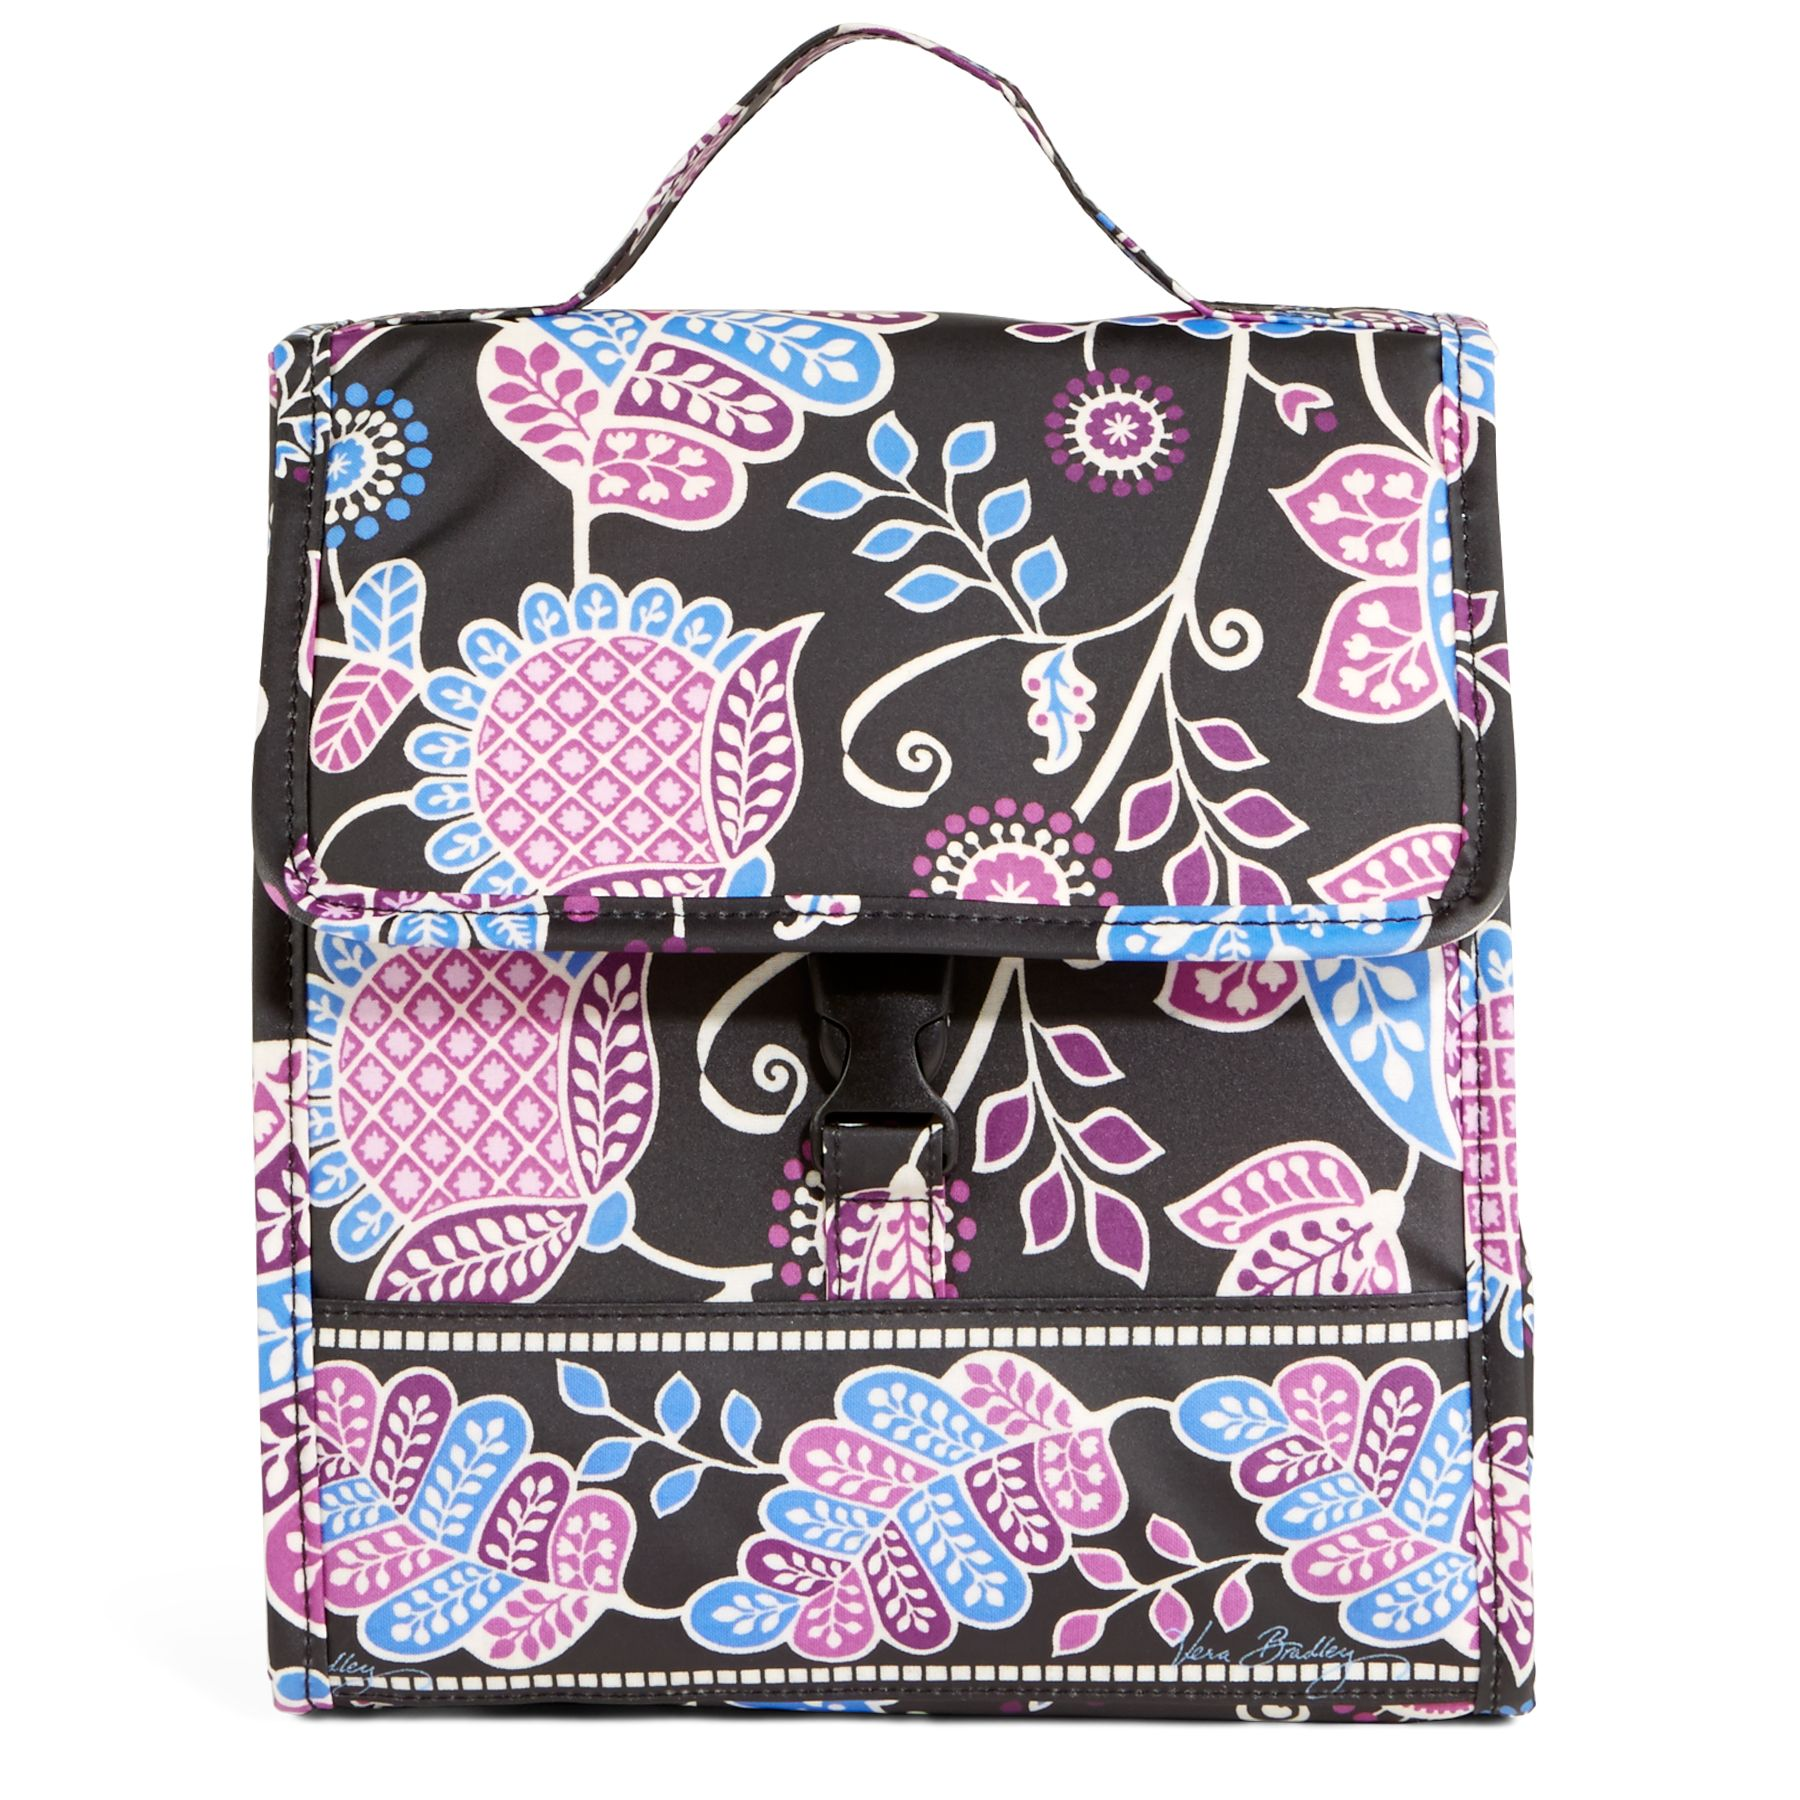 Vera Bradley Lunch Sack Bag in Alpine Floral